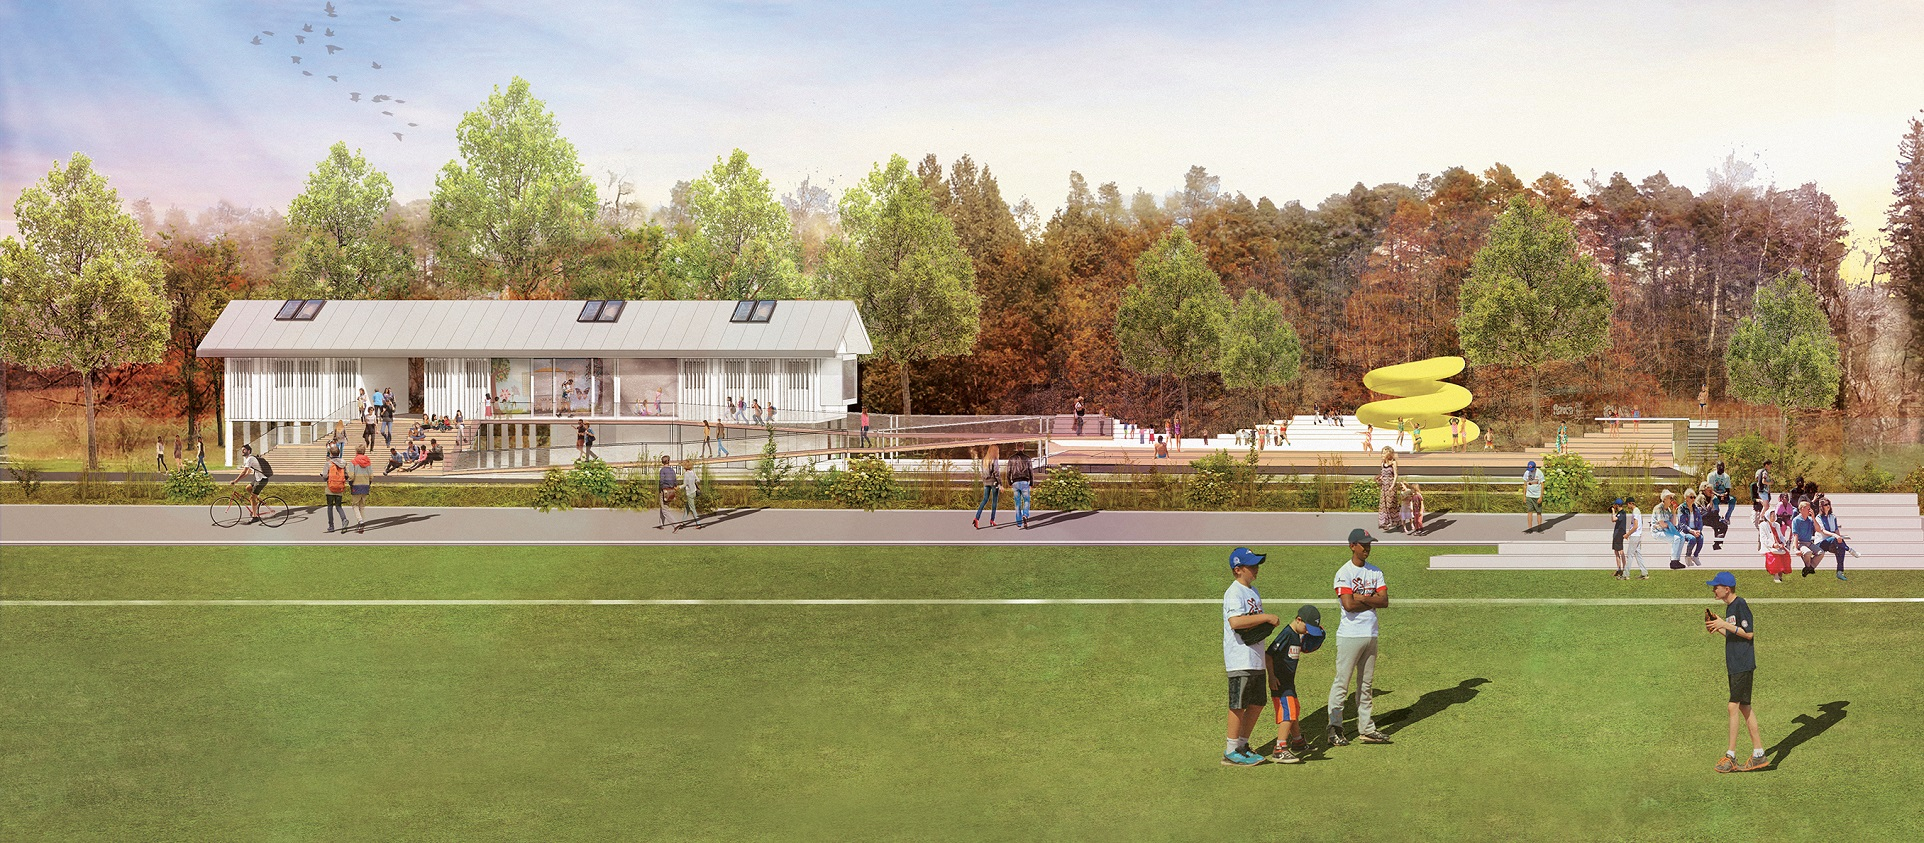 bolton camp project toronto and region conservation authority trca